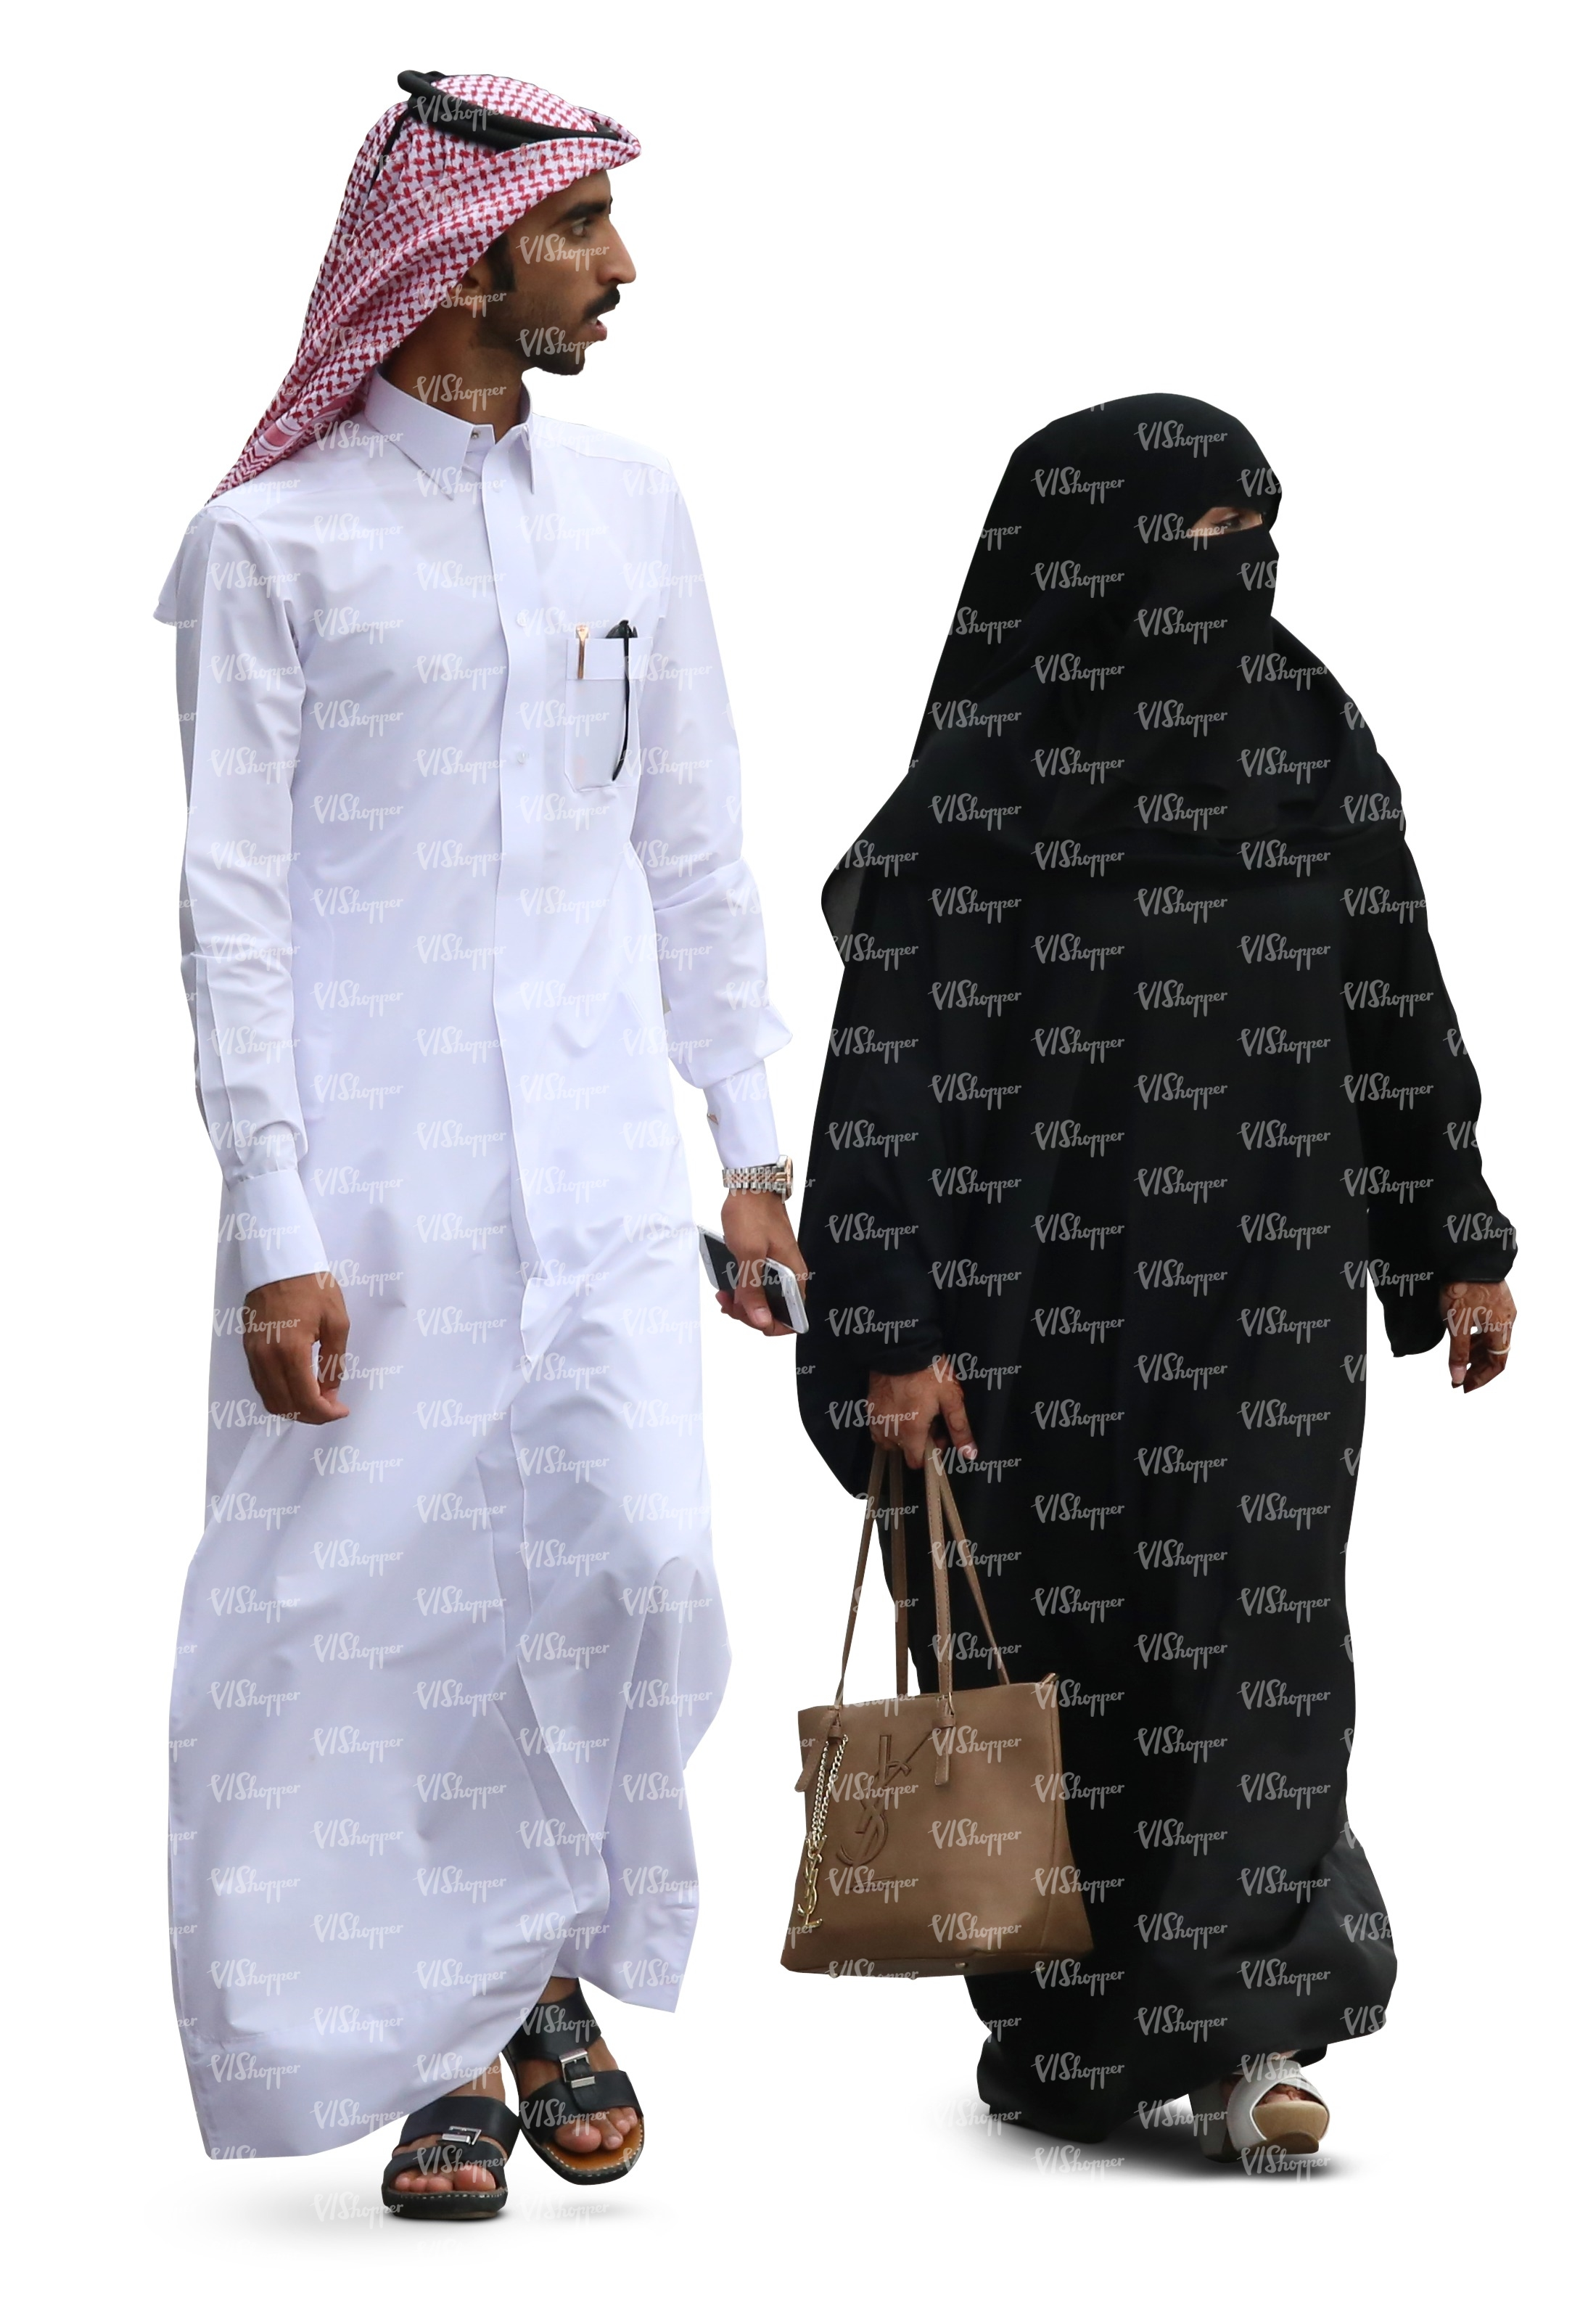 arab man and woman walking cut out people vishopper